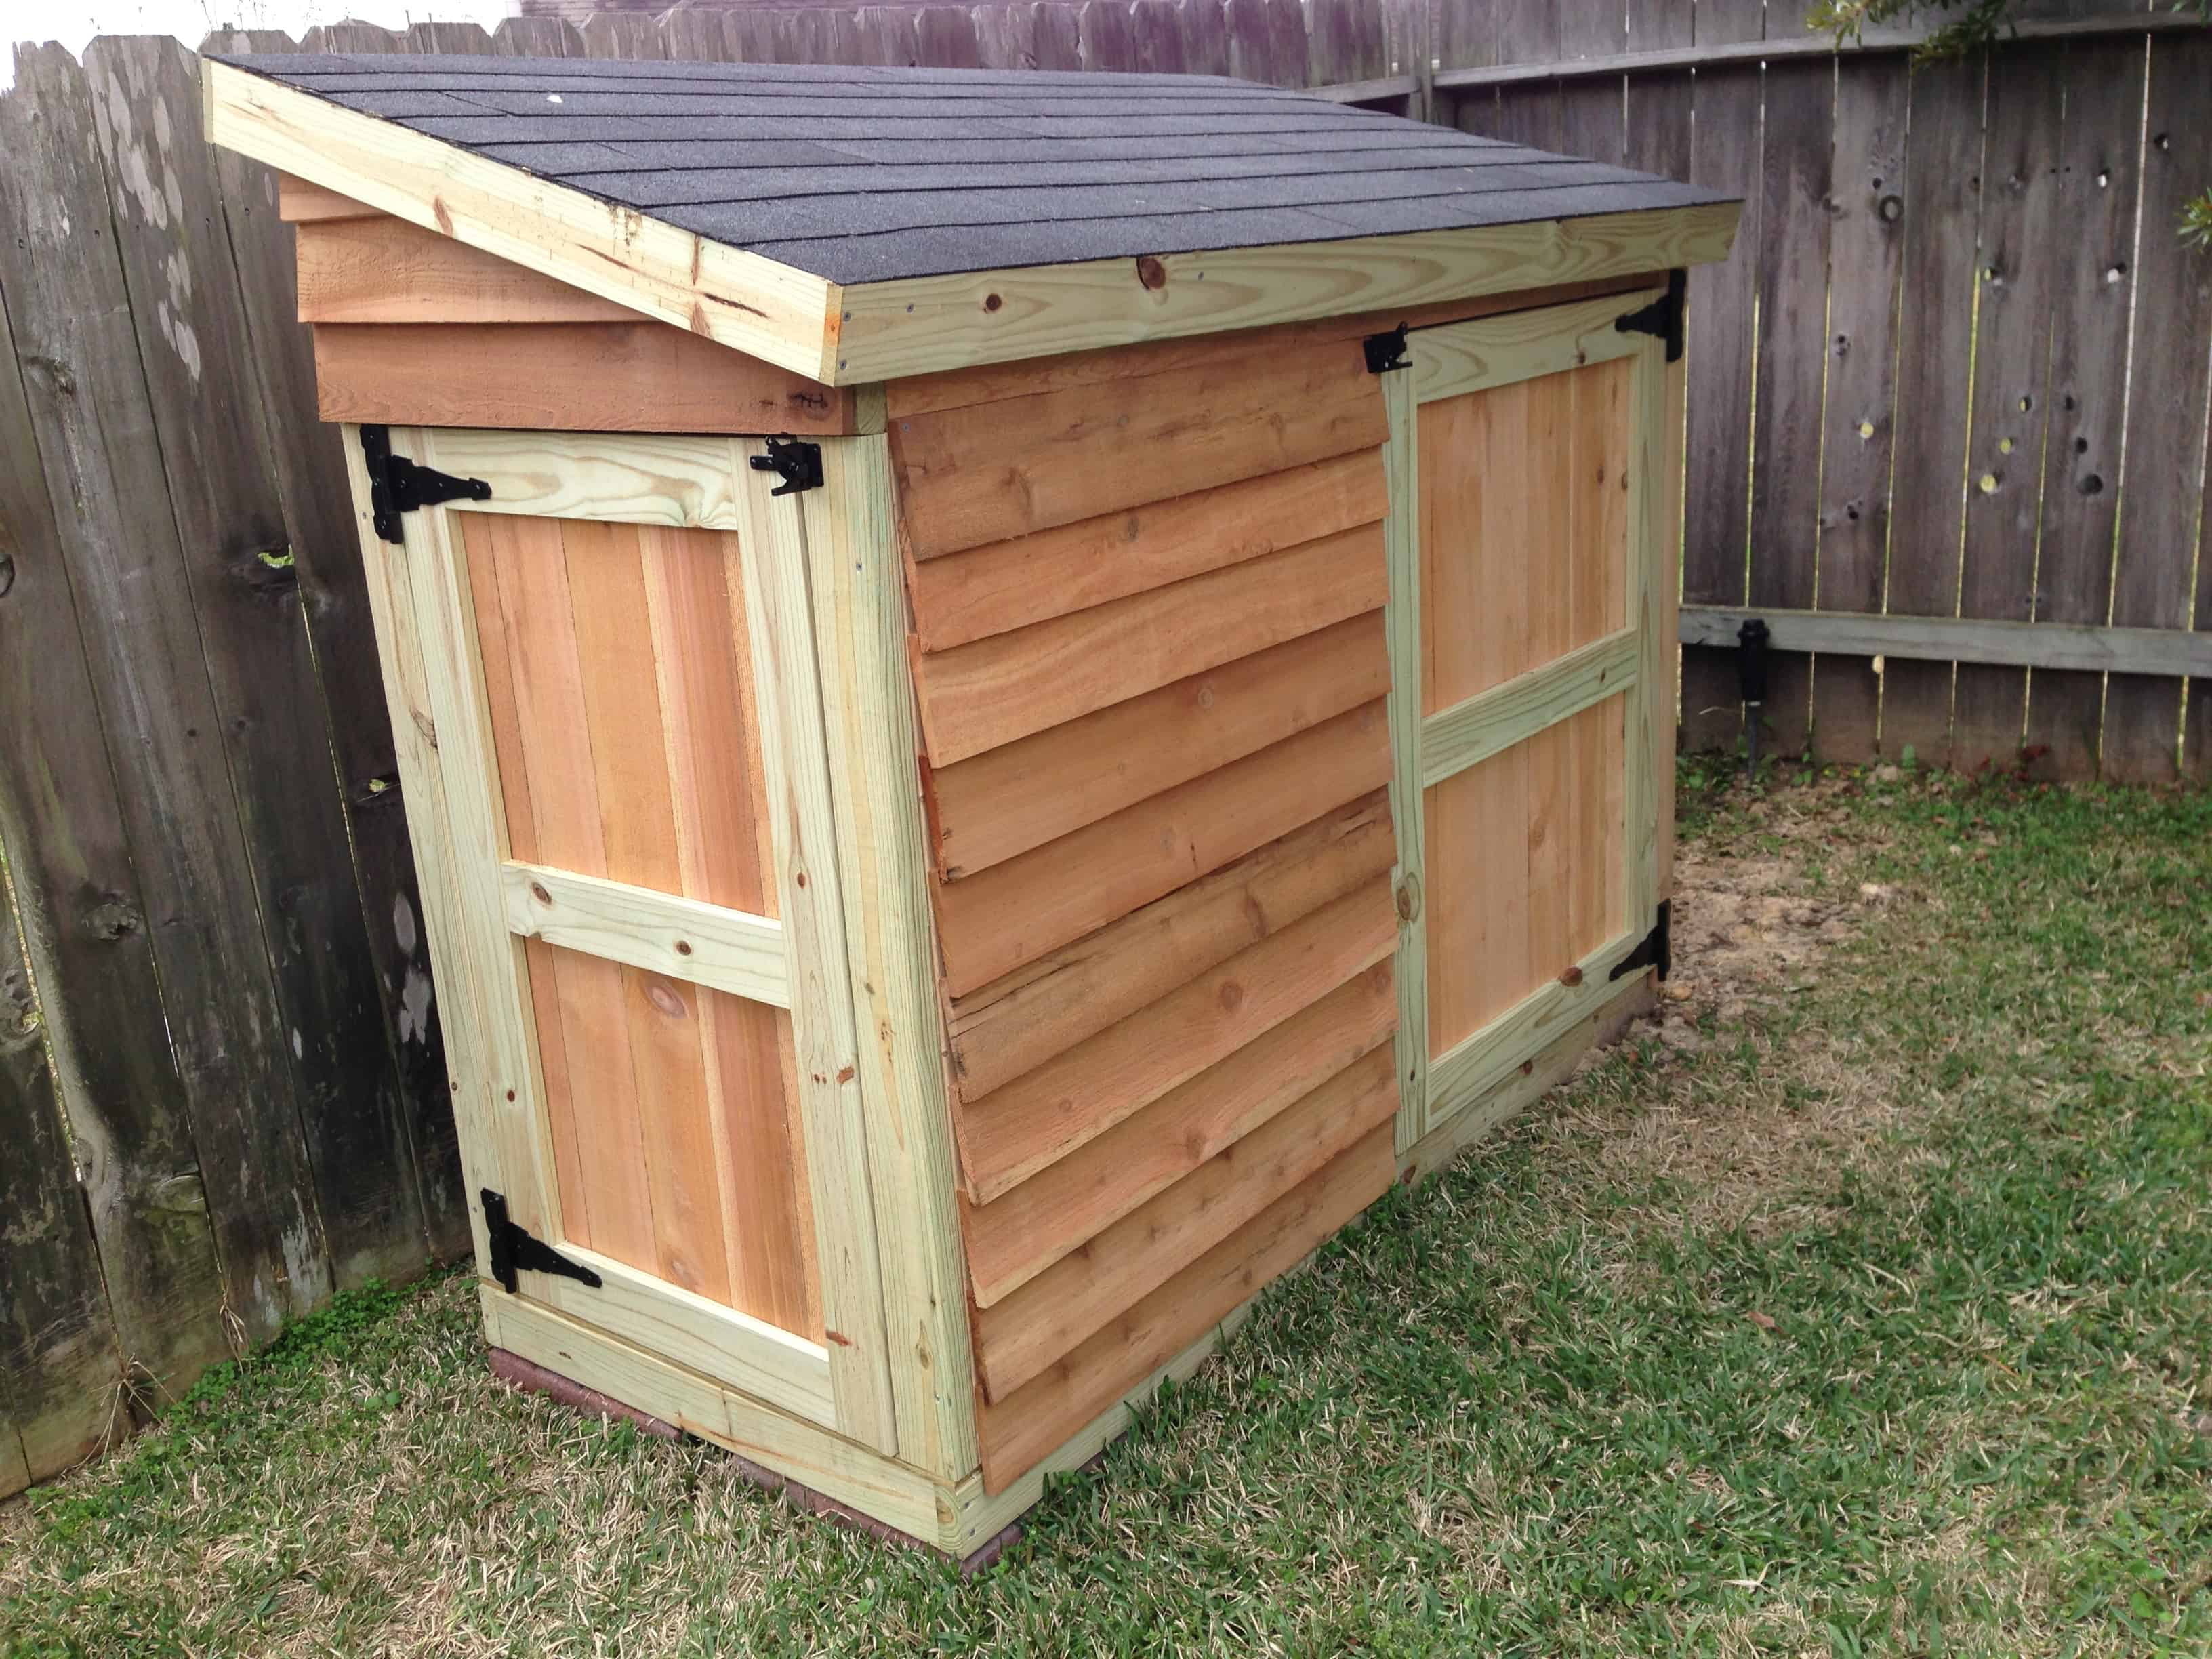 Small diy lawn mower shed